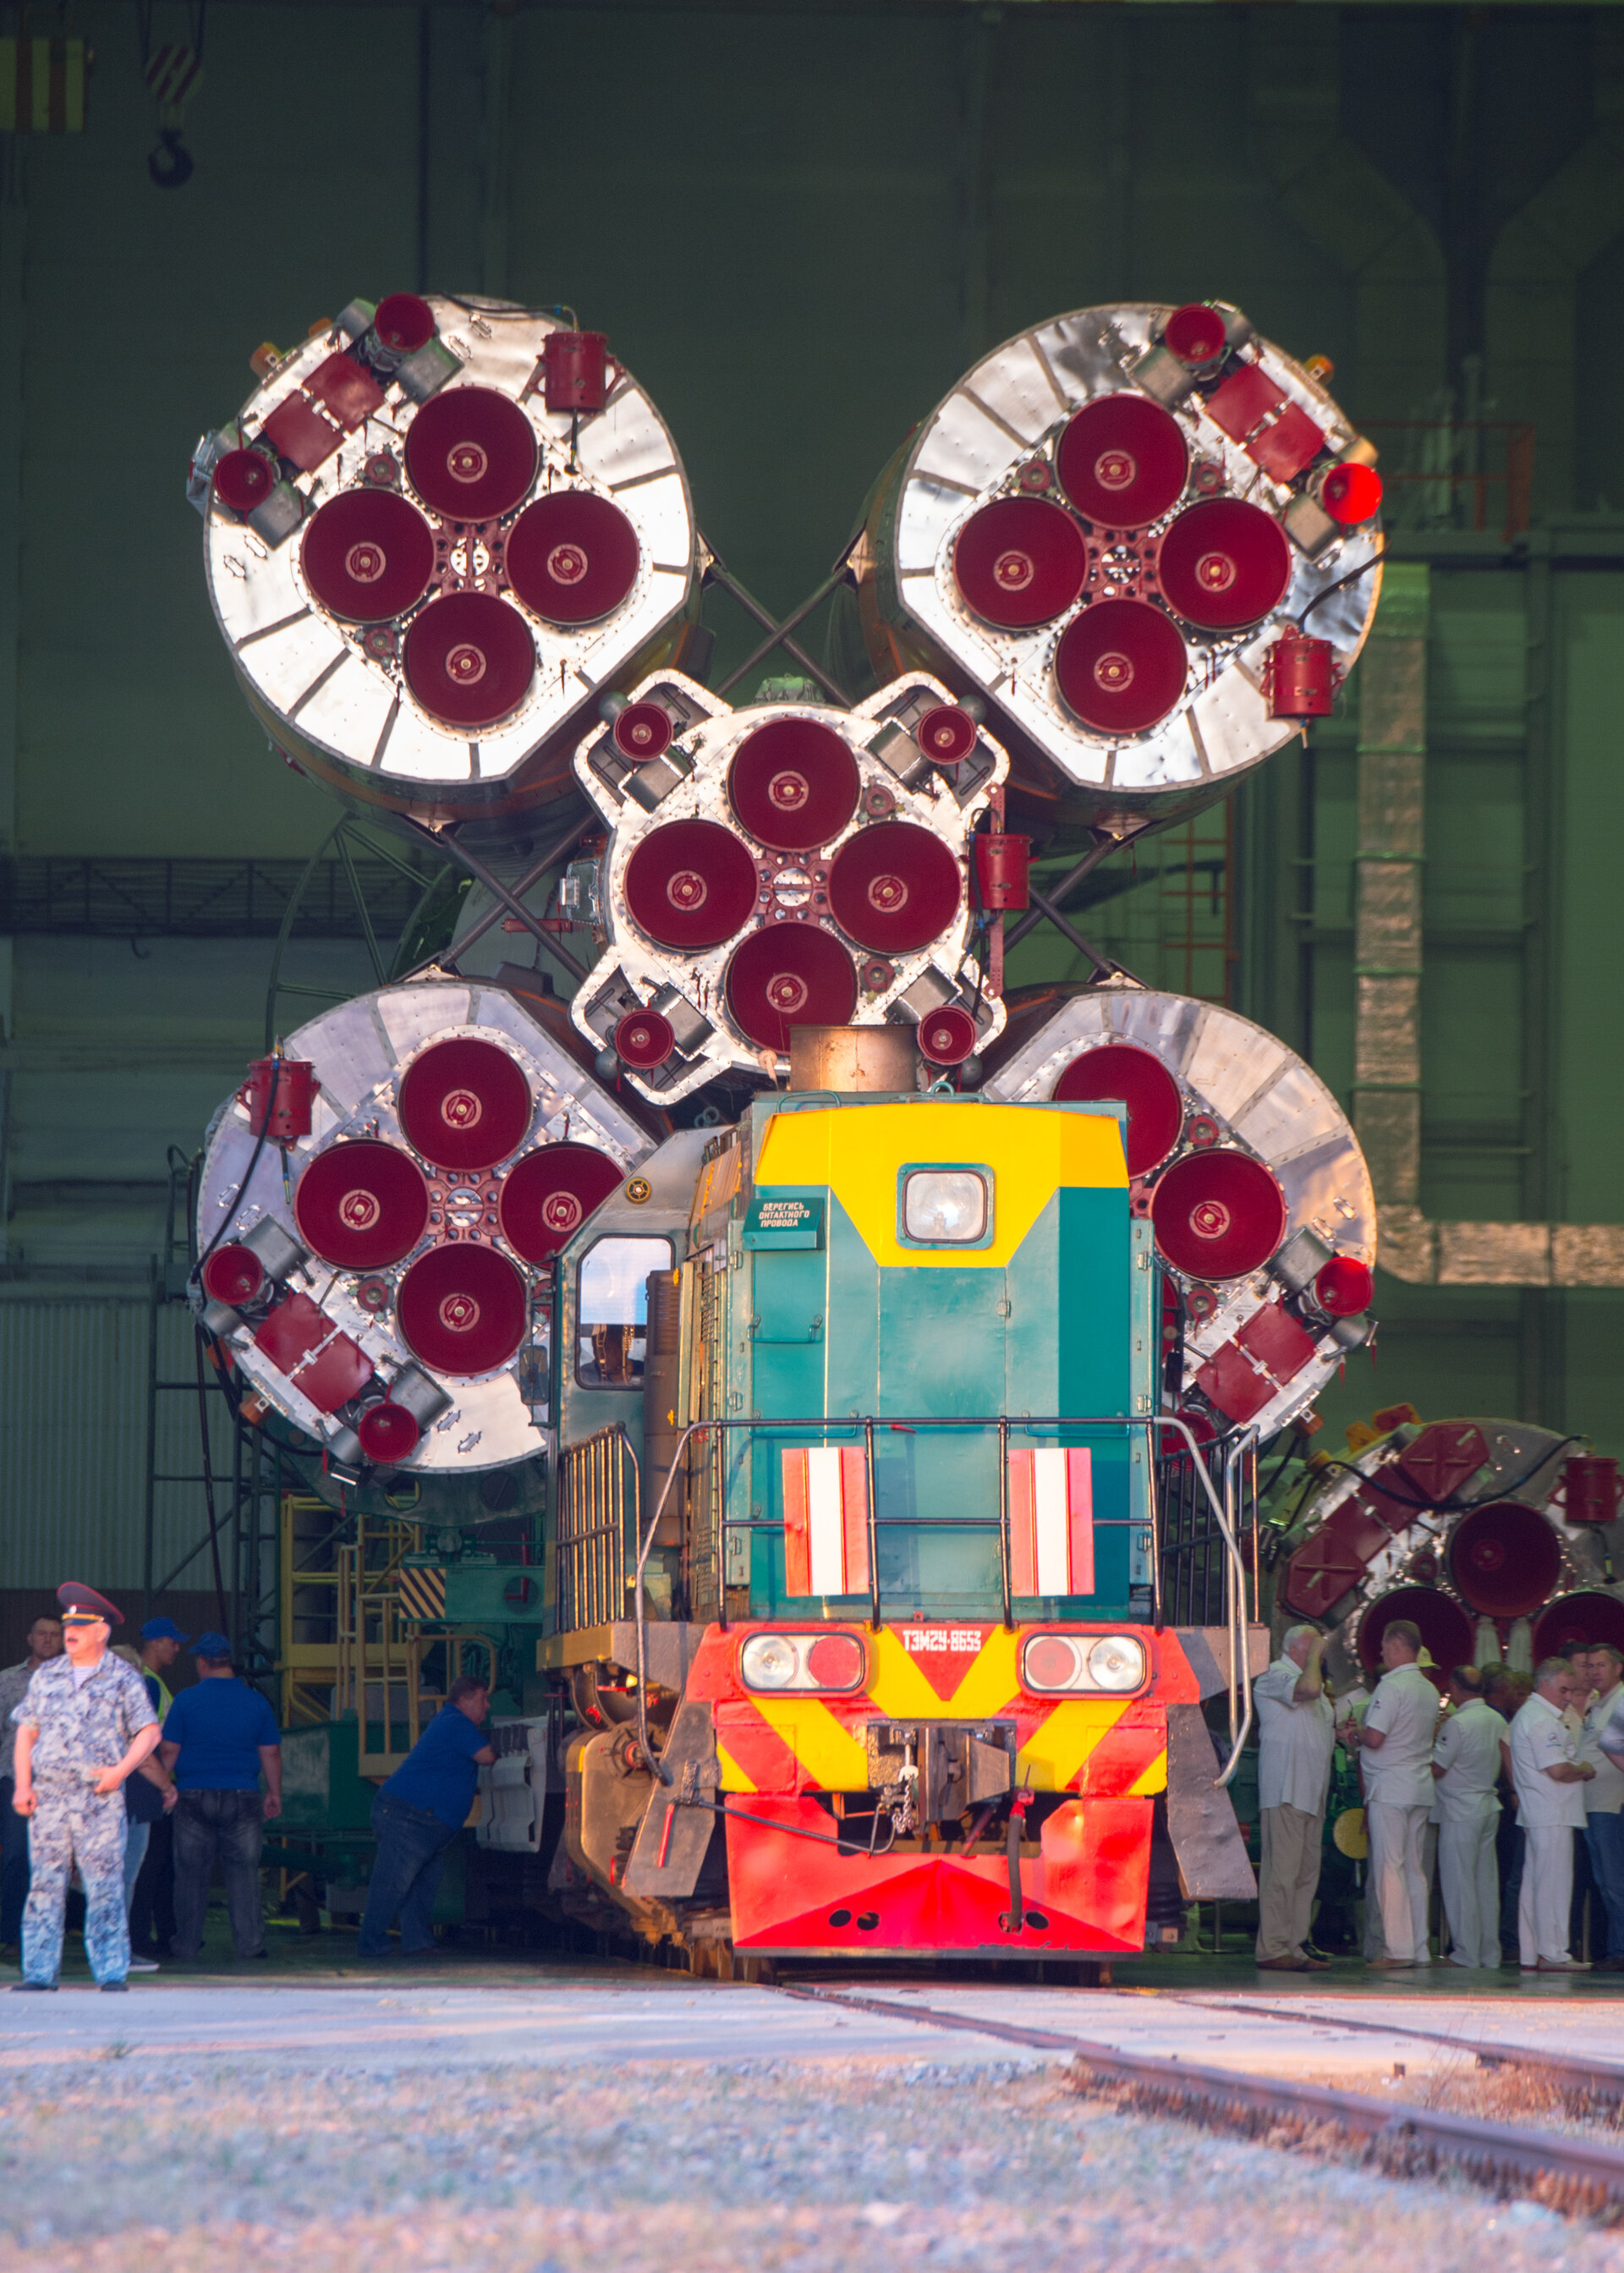 Soyuz MS-05 spacecraft roll out